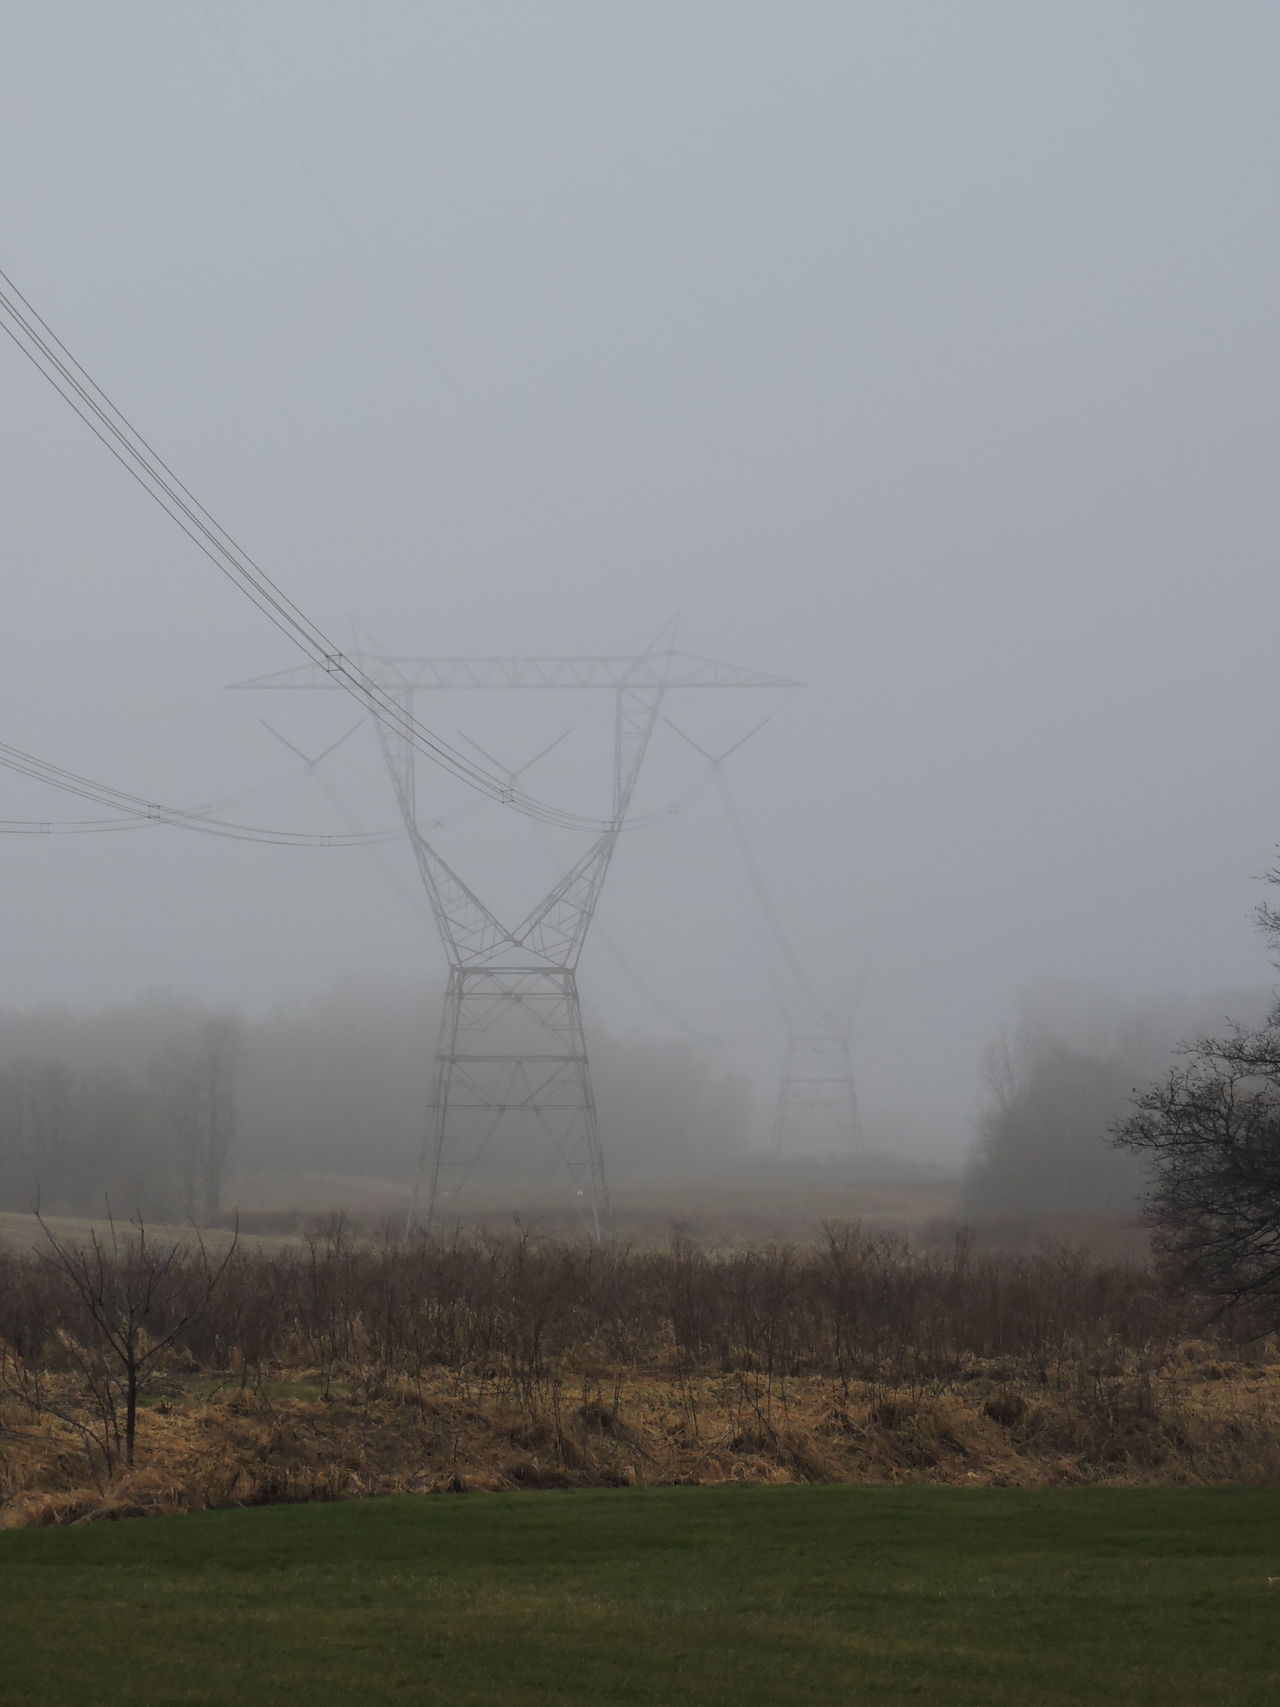 Connection Day Electricity  Electricity Pylon Field Fog Foggy Days  Grass Landscape Nature No People Outdoors Tranquility Tree